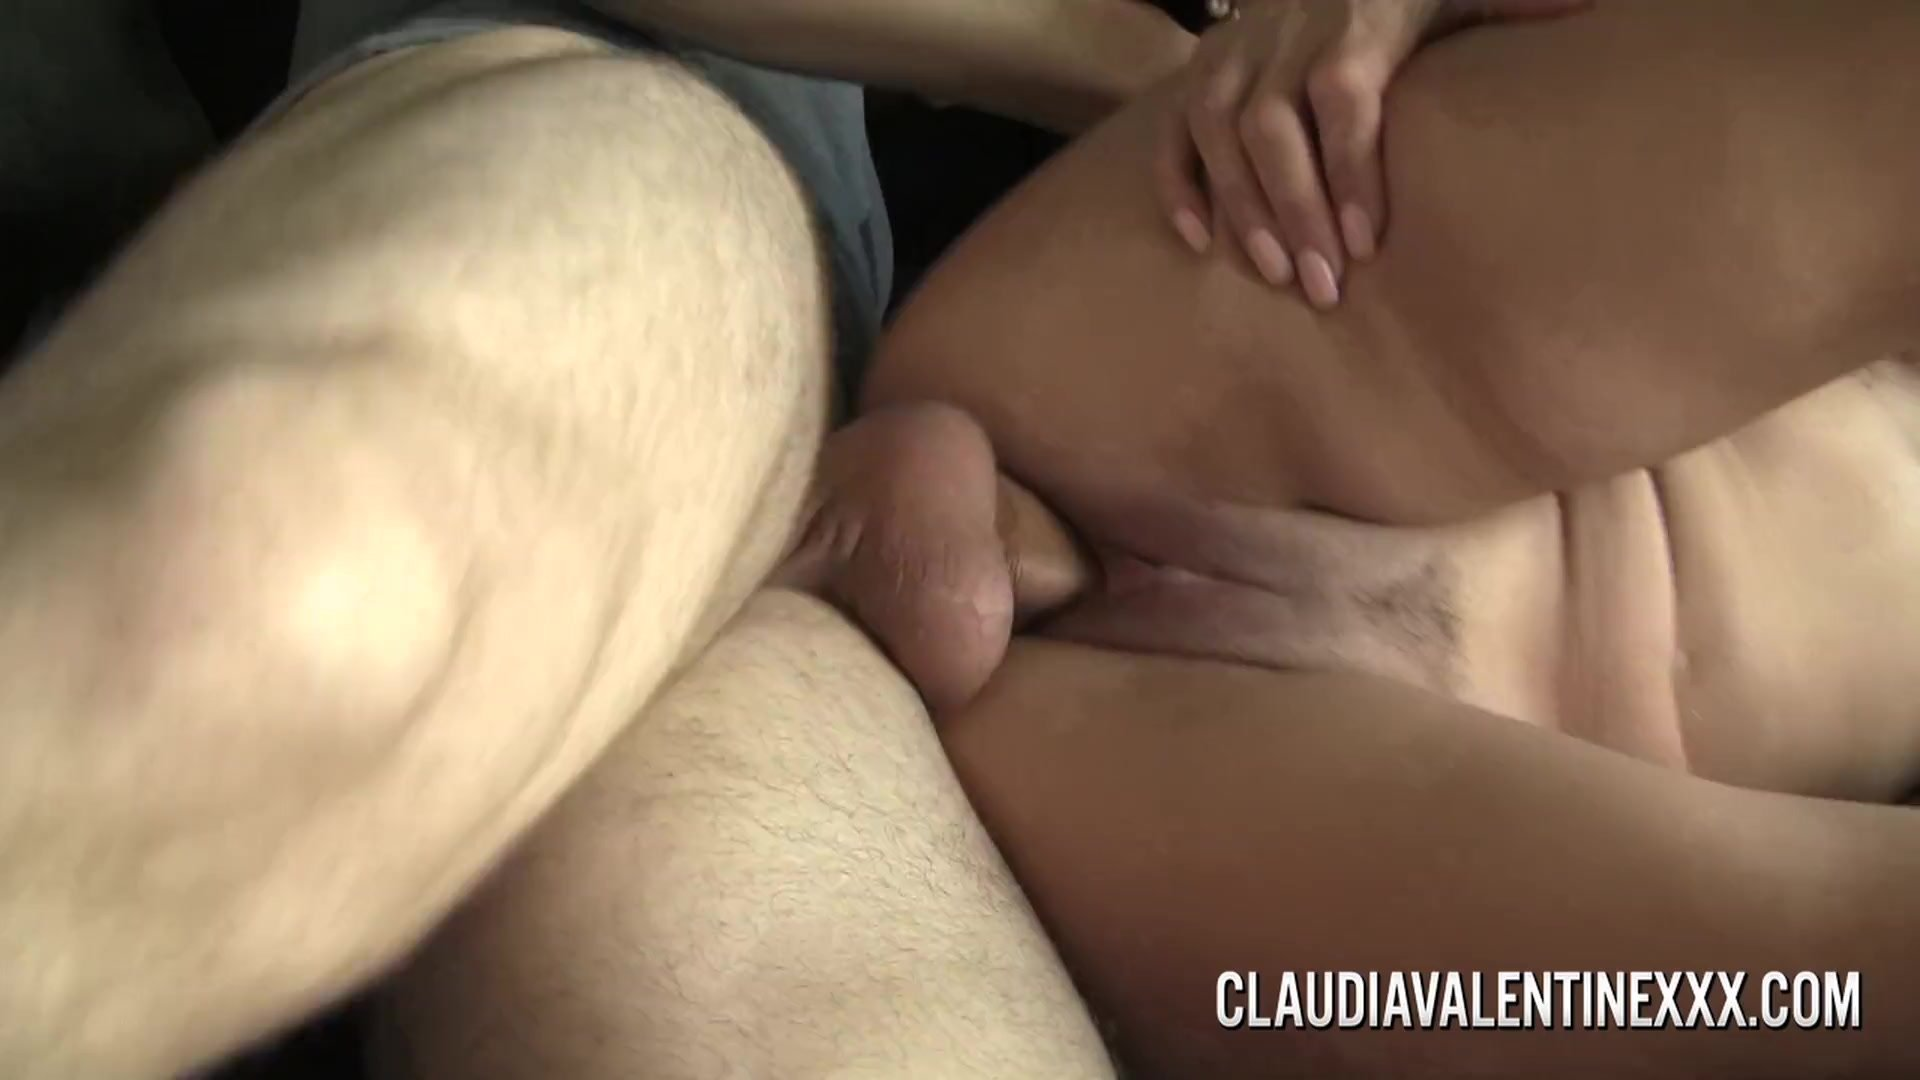 Busty MILF Claudia Valentine distracts her man with sex